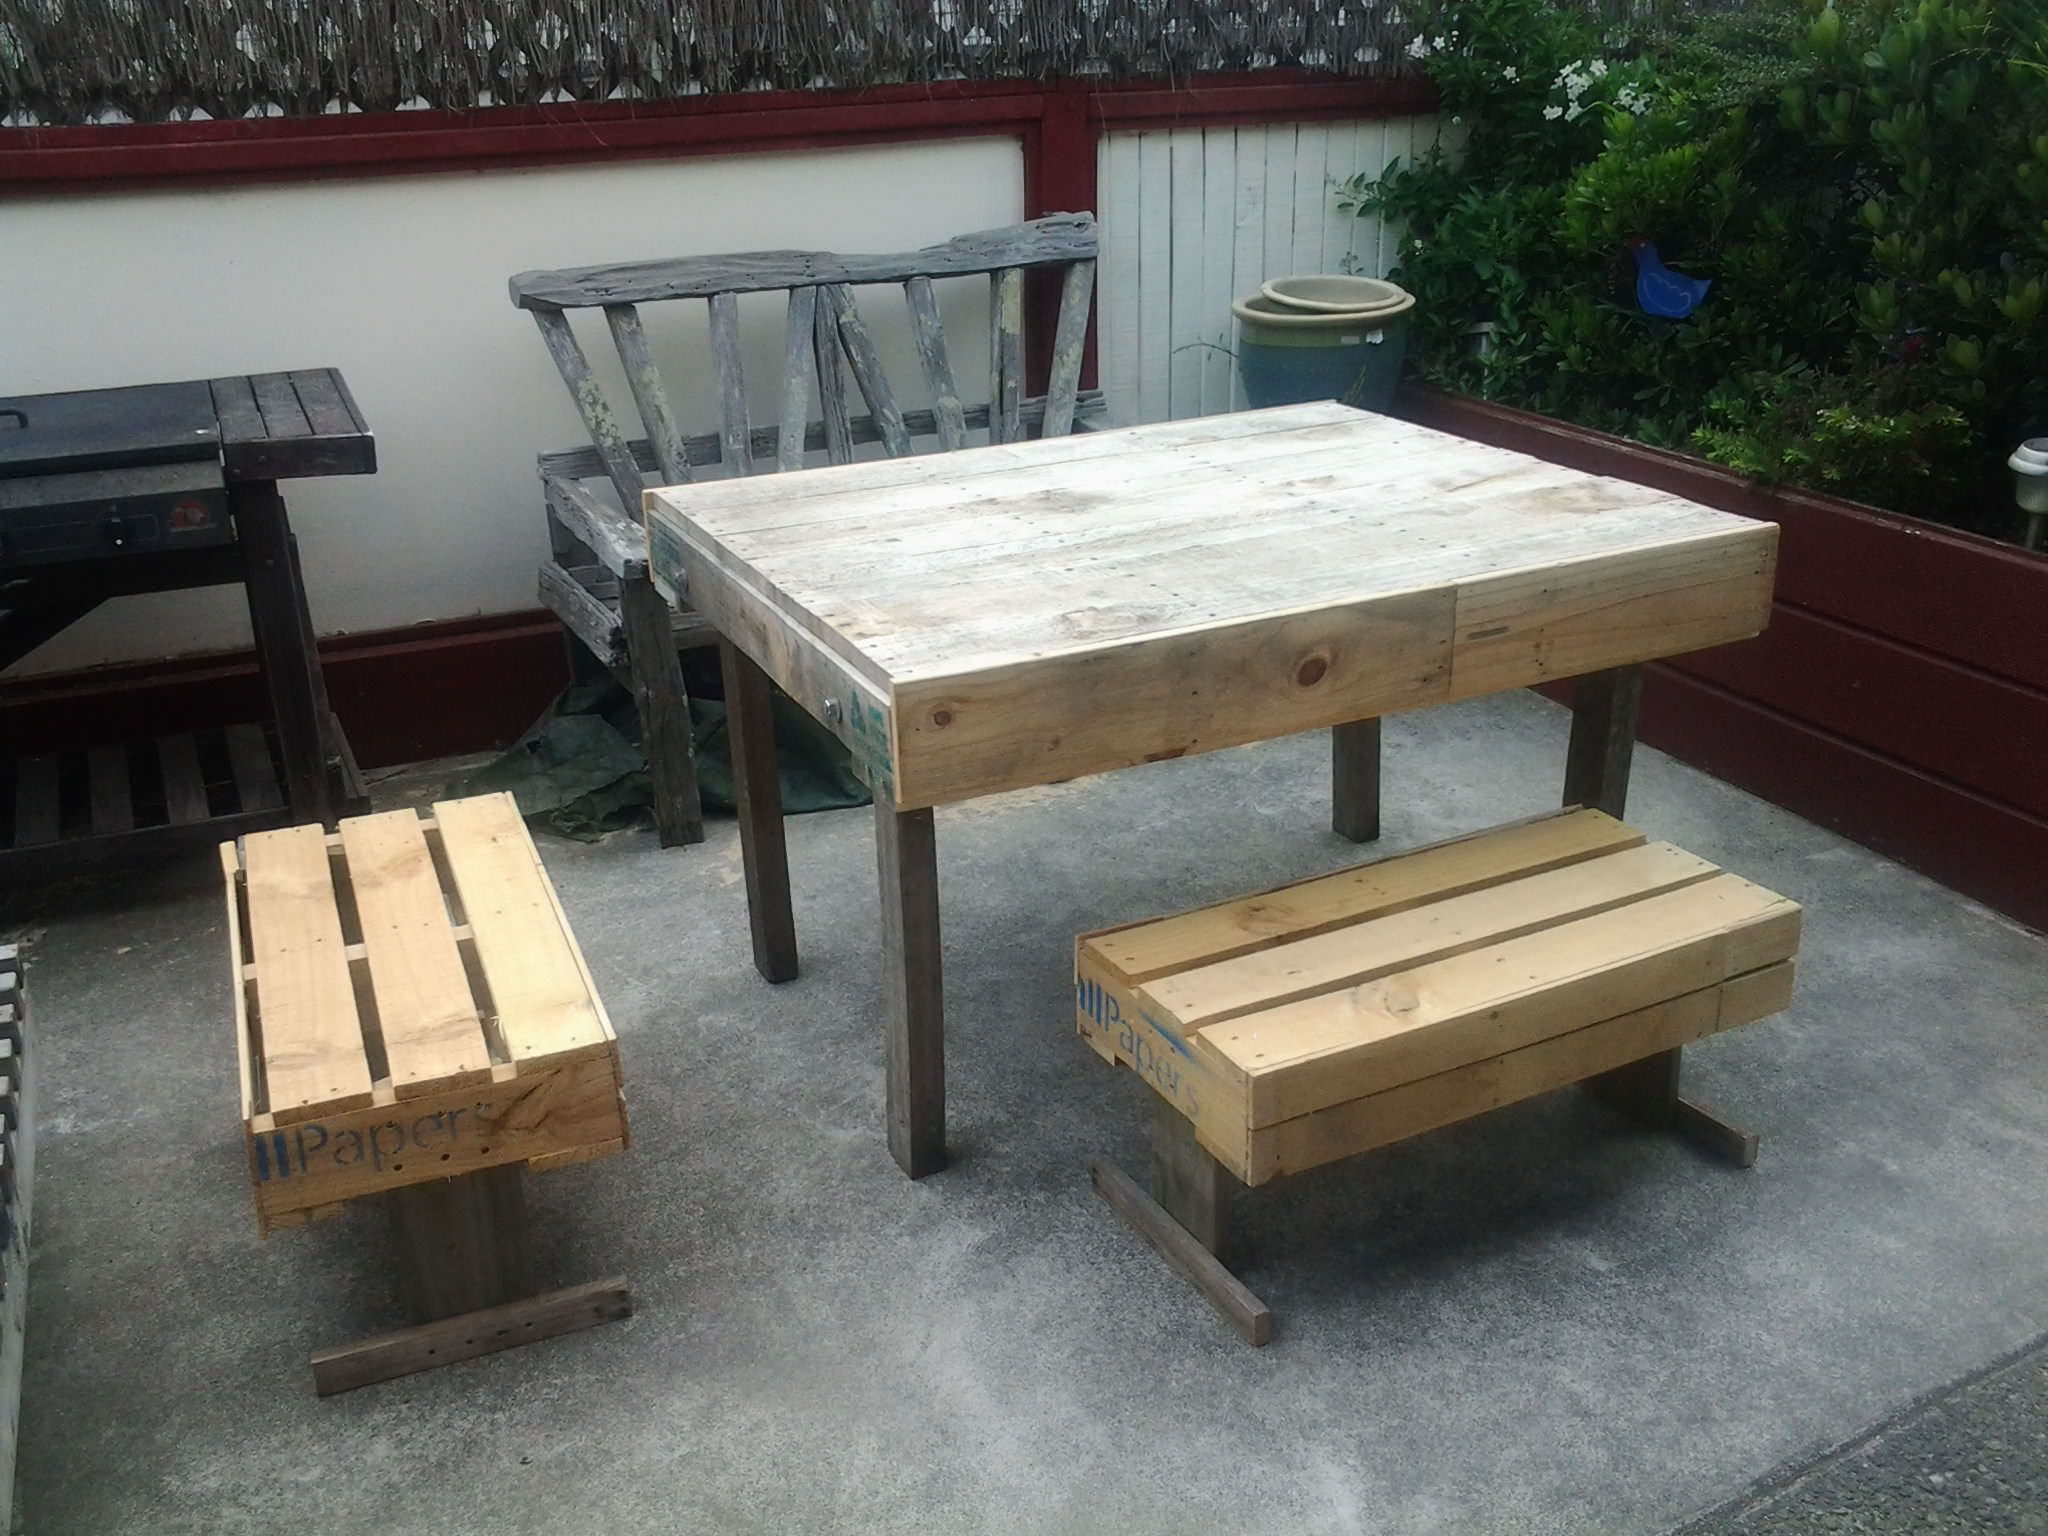 Complete Pallet Garden Set Pallet Ideas 1001 Pallets: Outdoor Pallets Table & Chairs